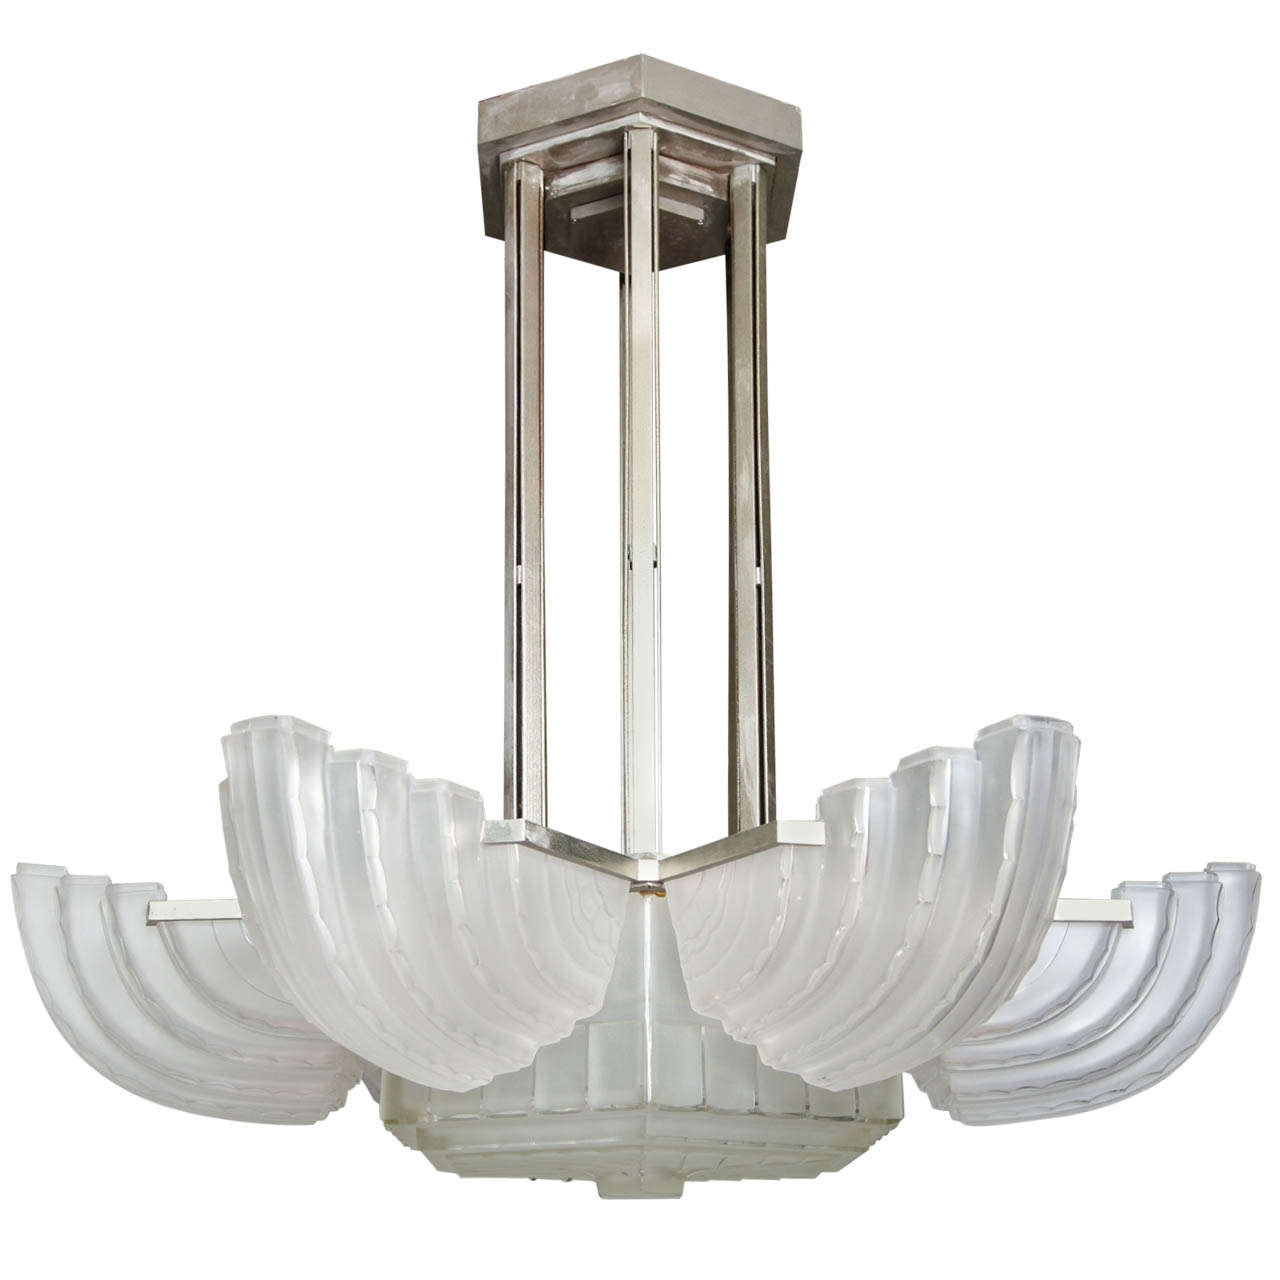 Large And Important Art Deco Chandelier Sabino Paul Stamati Intended For Large Art Deco Chandelier (Image 10 of 15)